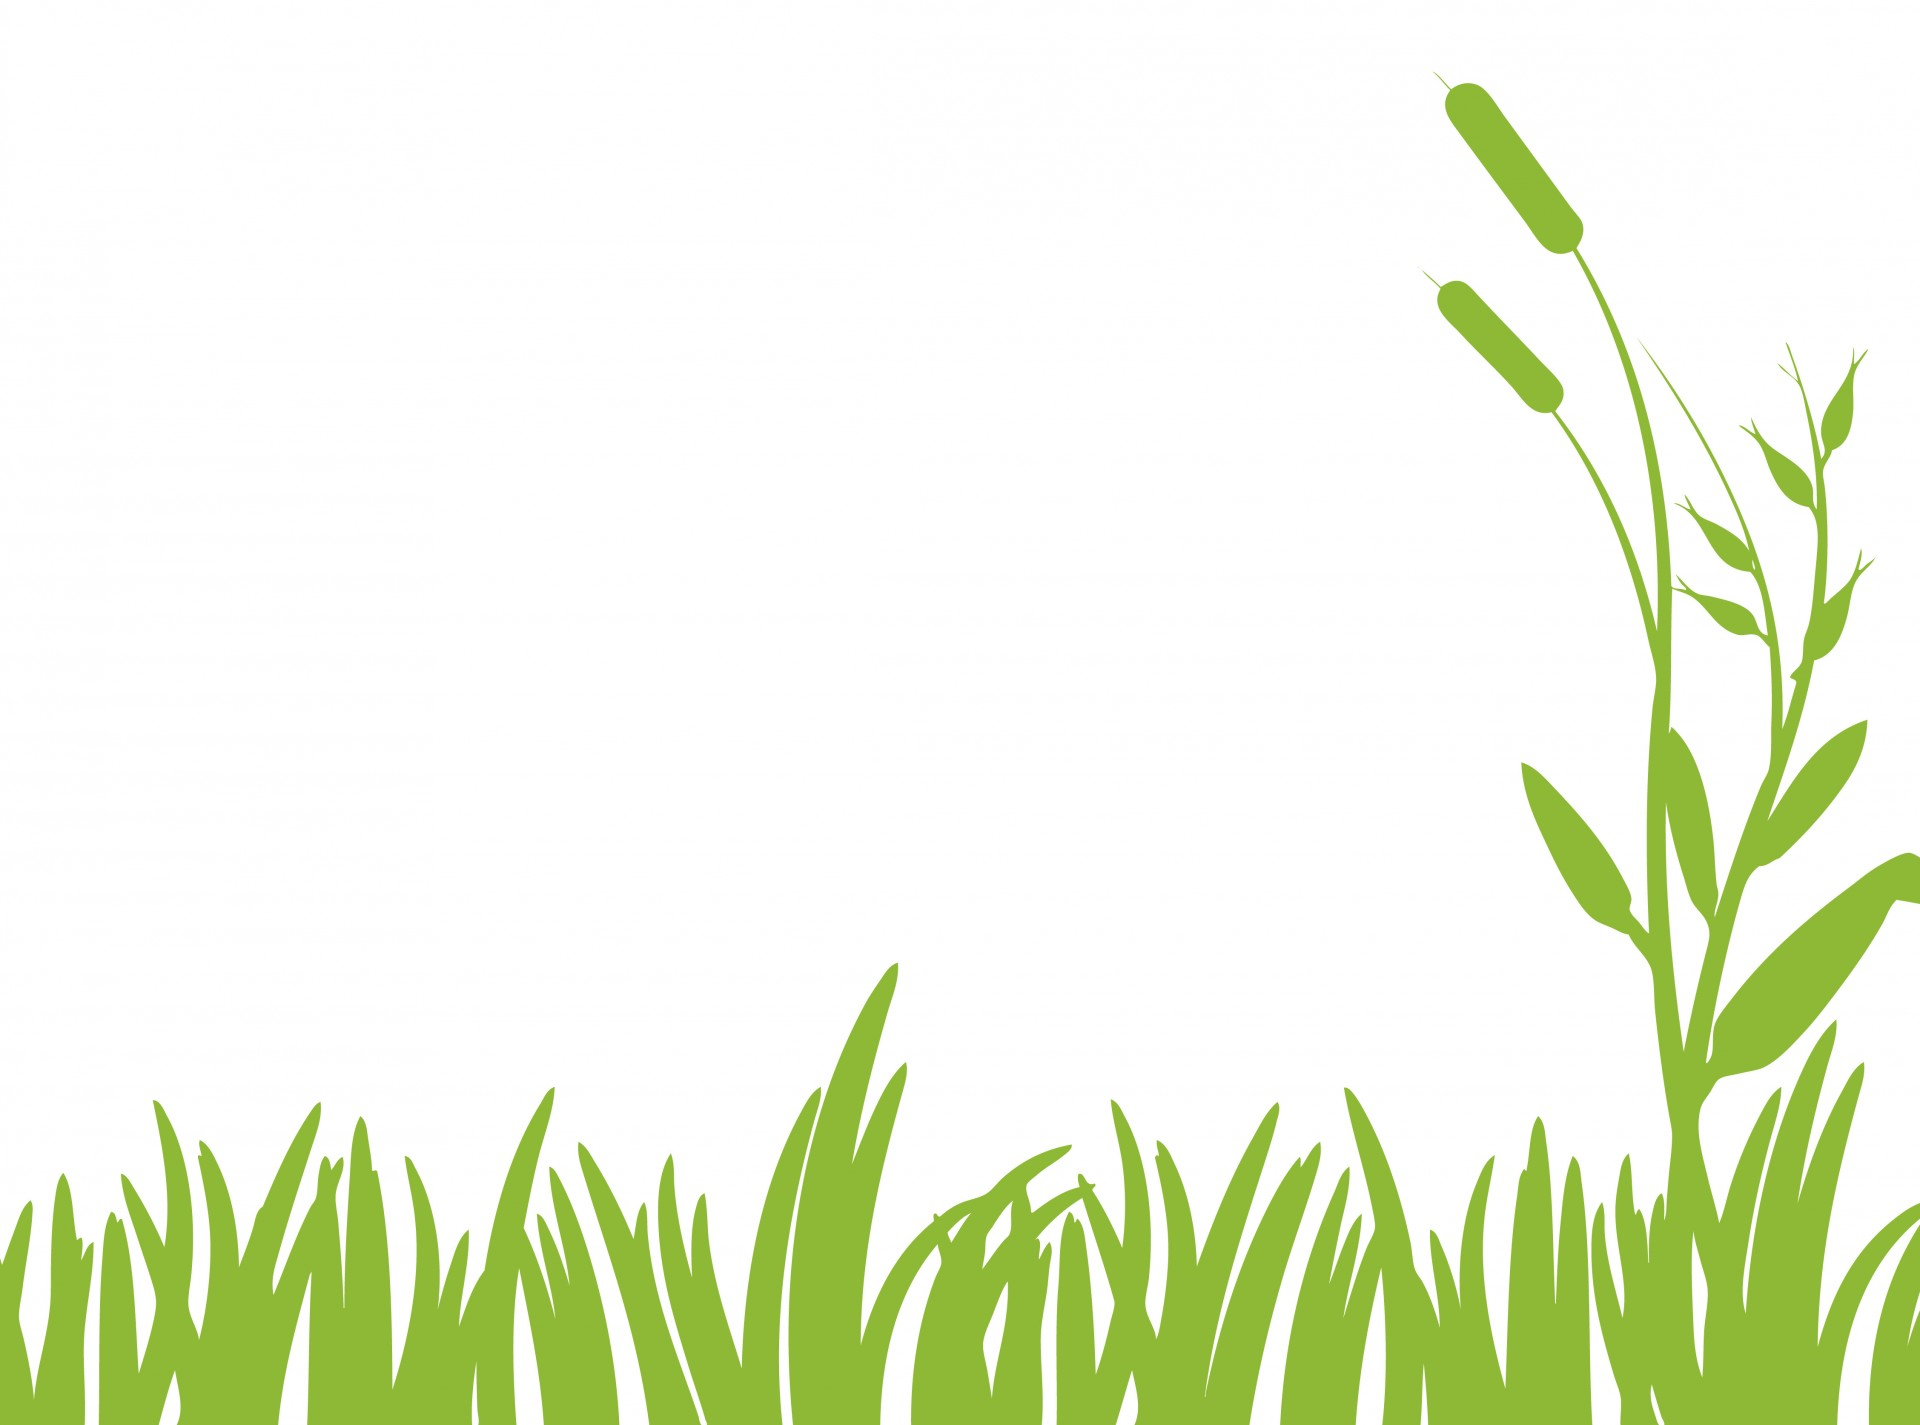 Grass graphic clipart banner royalty free download Green Grass Clipart & Green Grass Clip Art Images - ClipartALL.com banner royalty free download